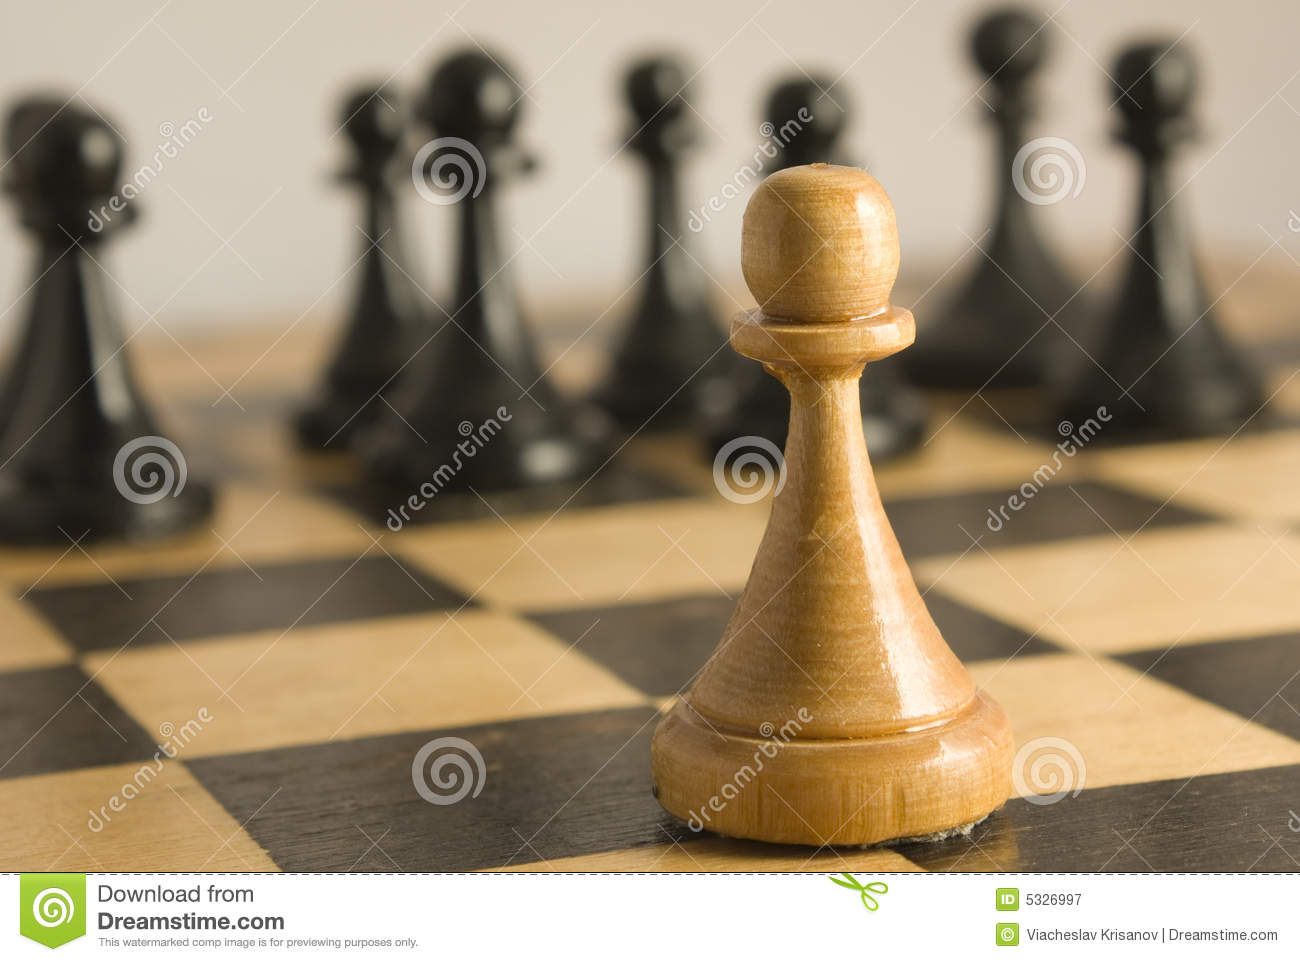 Chess exception to the rules